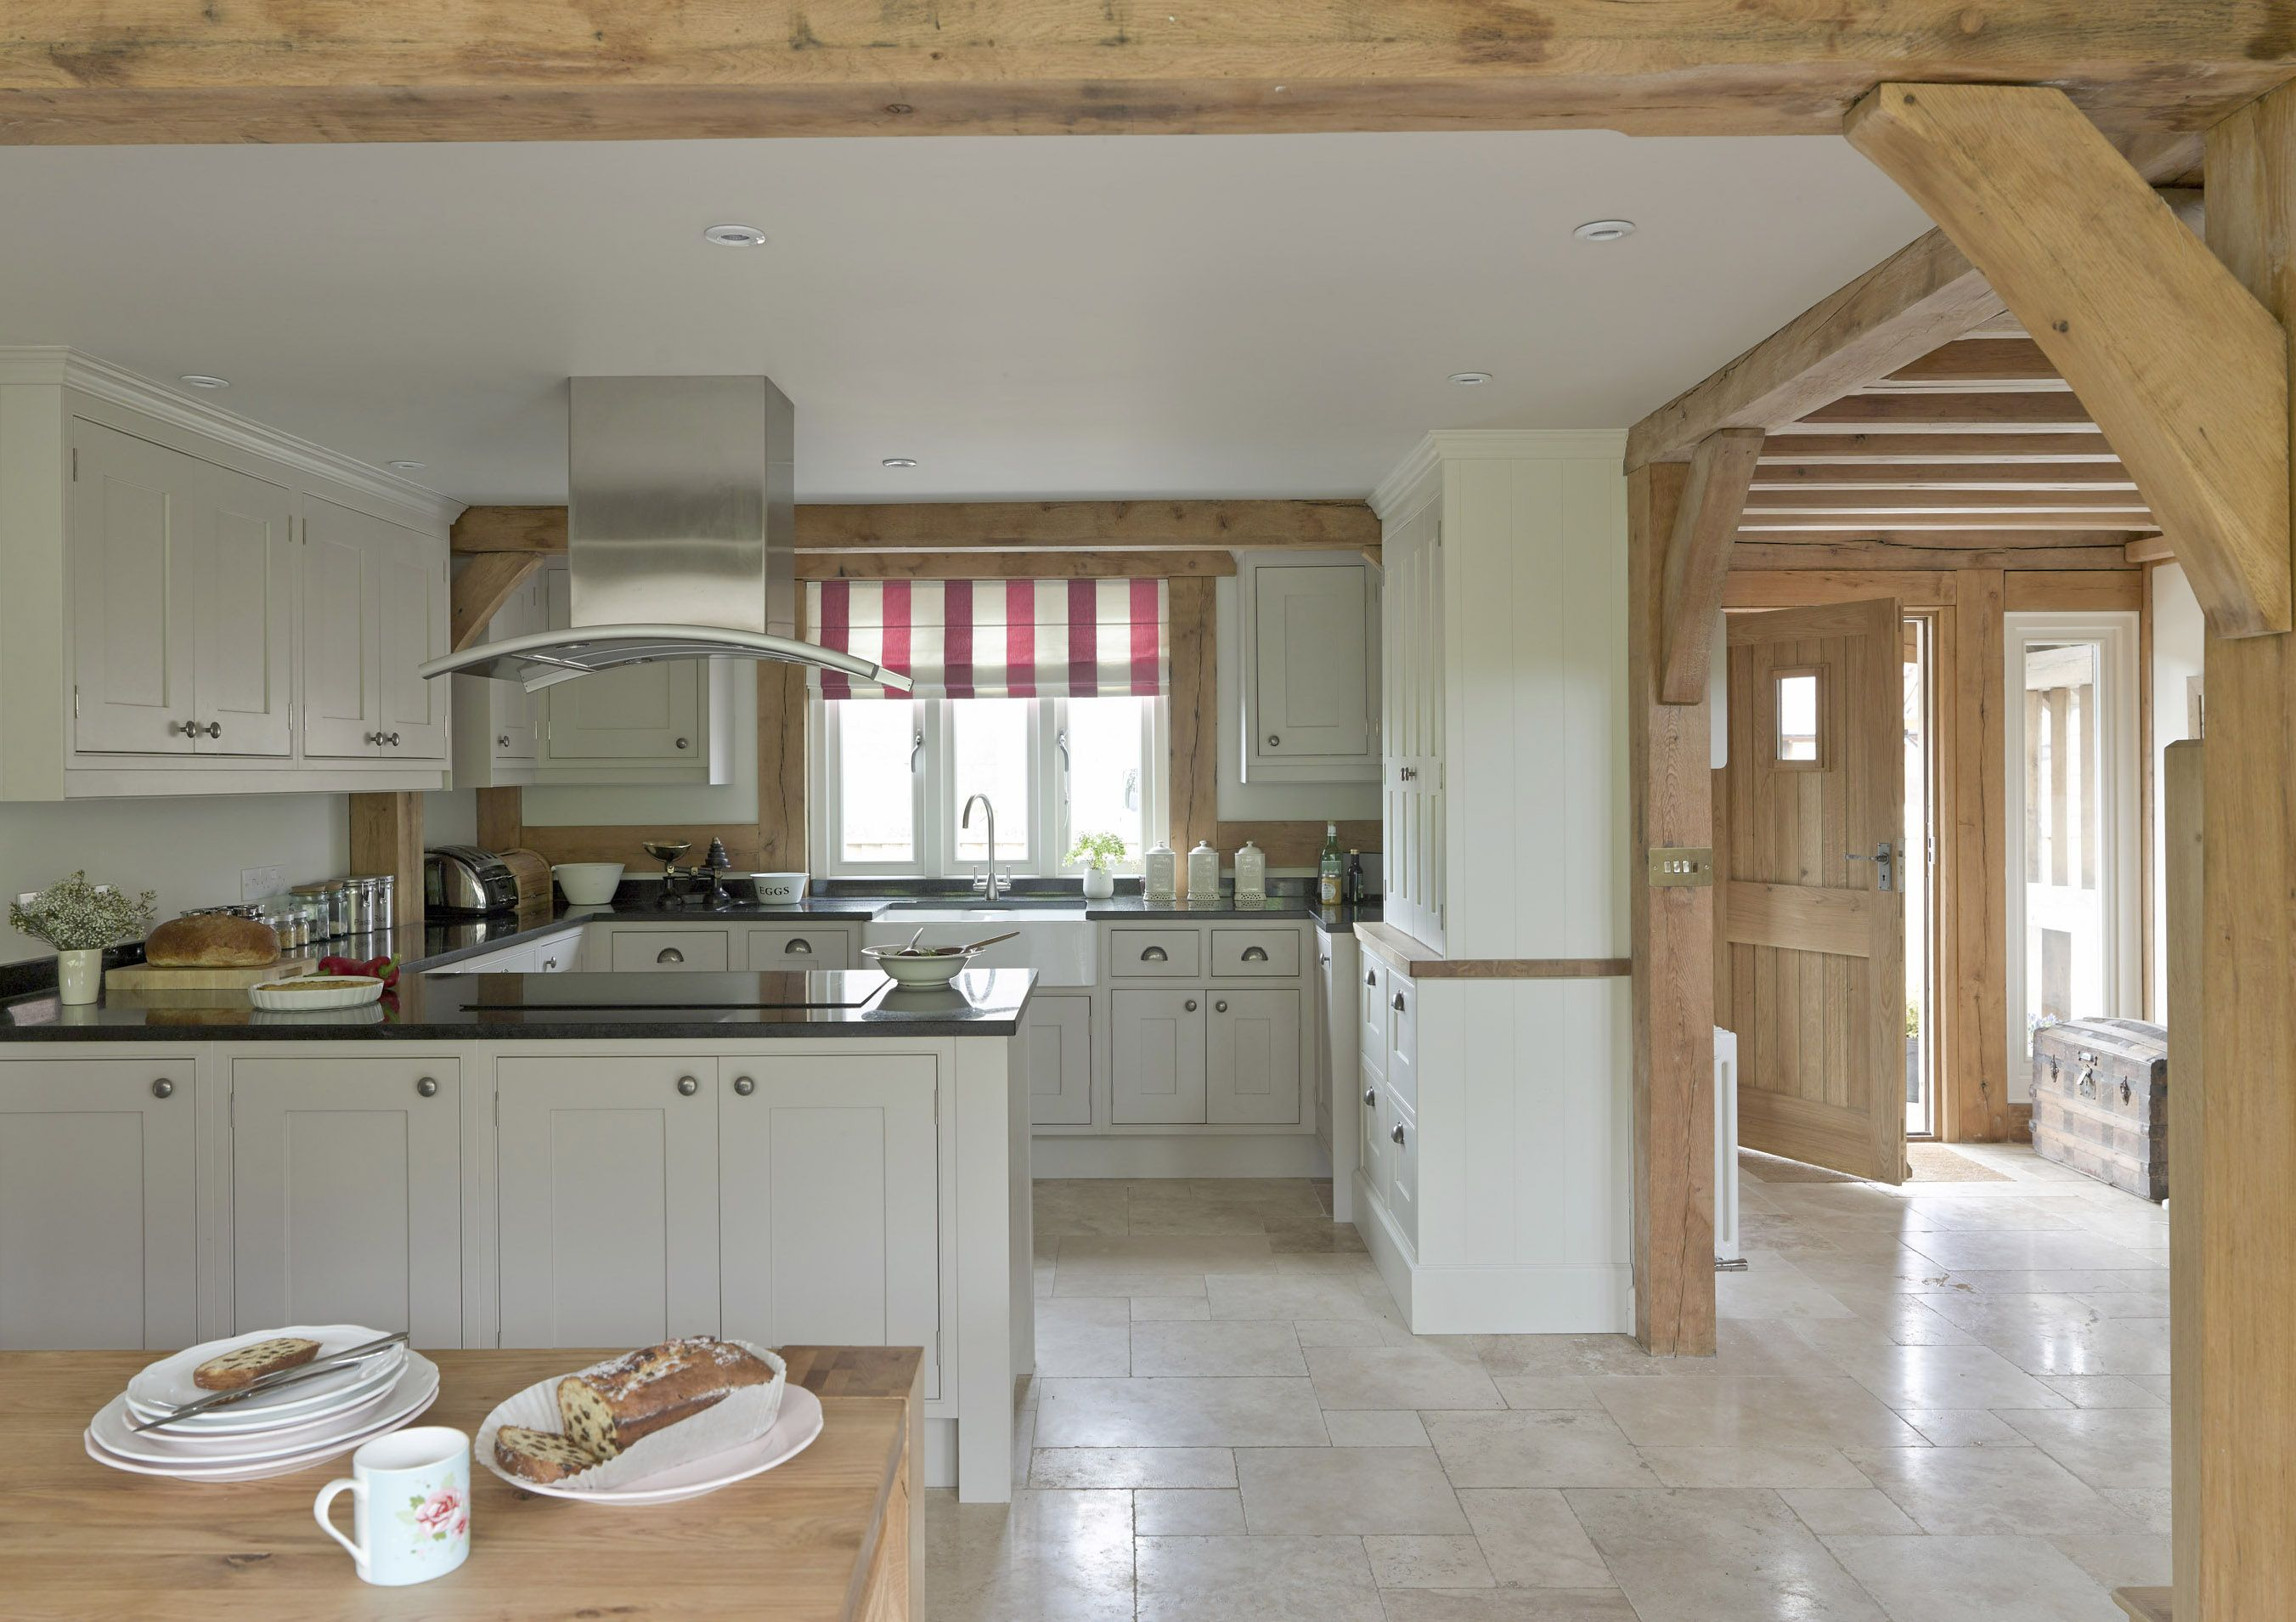 Open Kitchen With Front Door Close By Would Be Nice To Have The